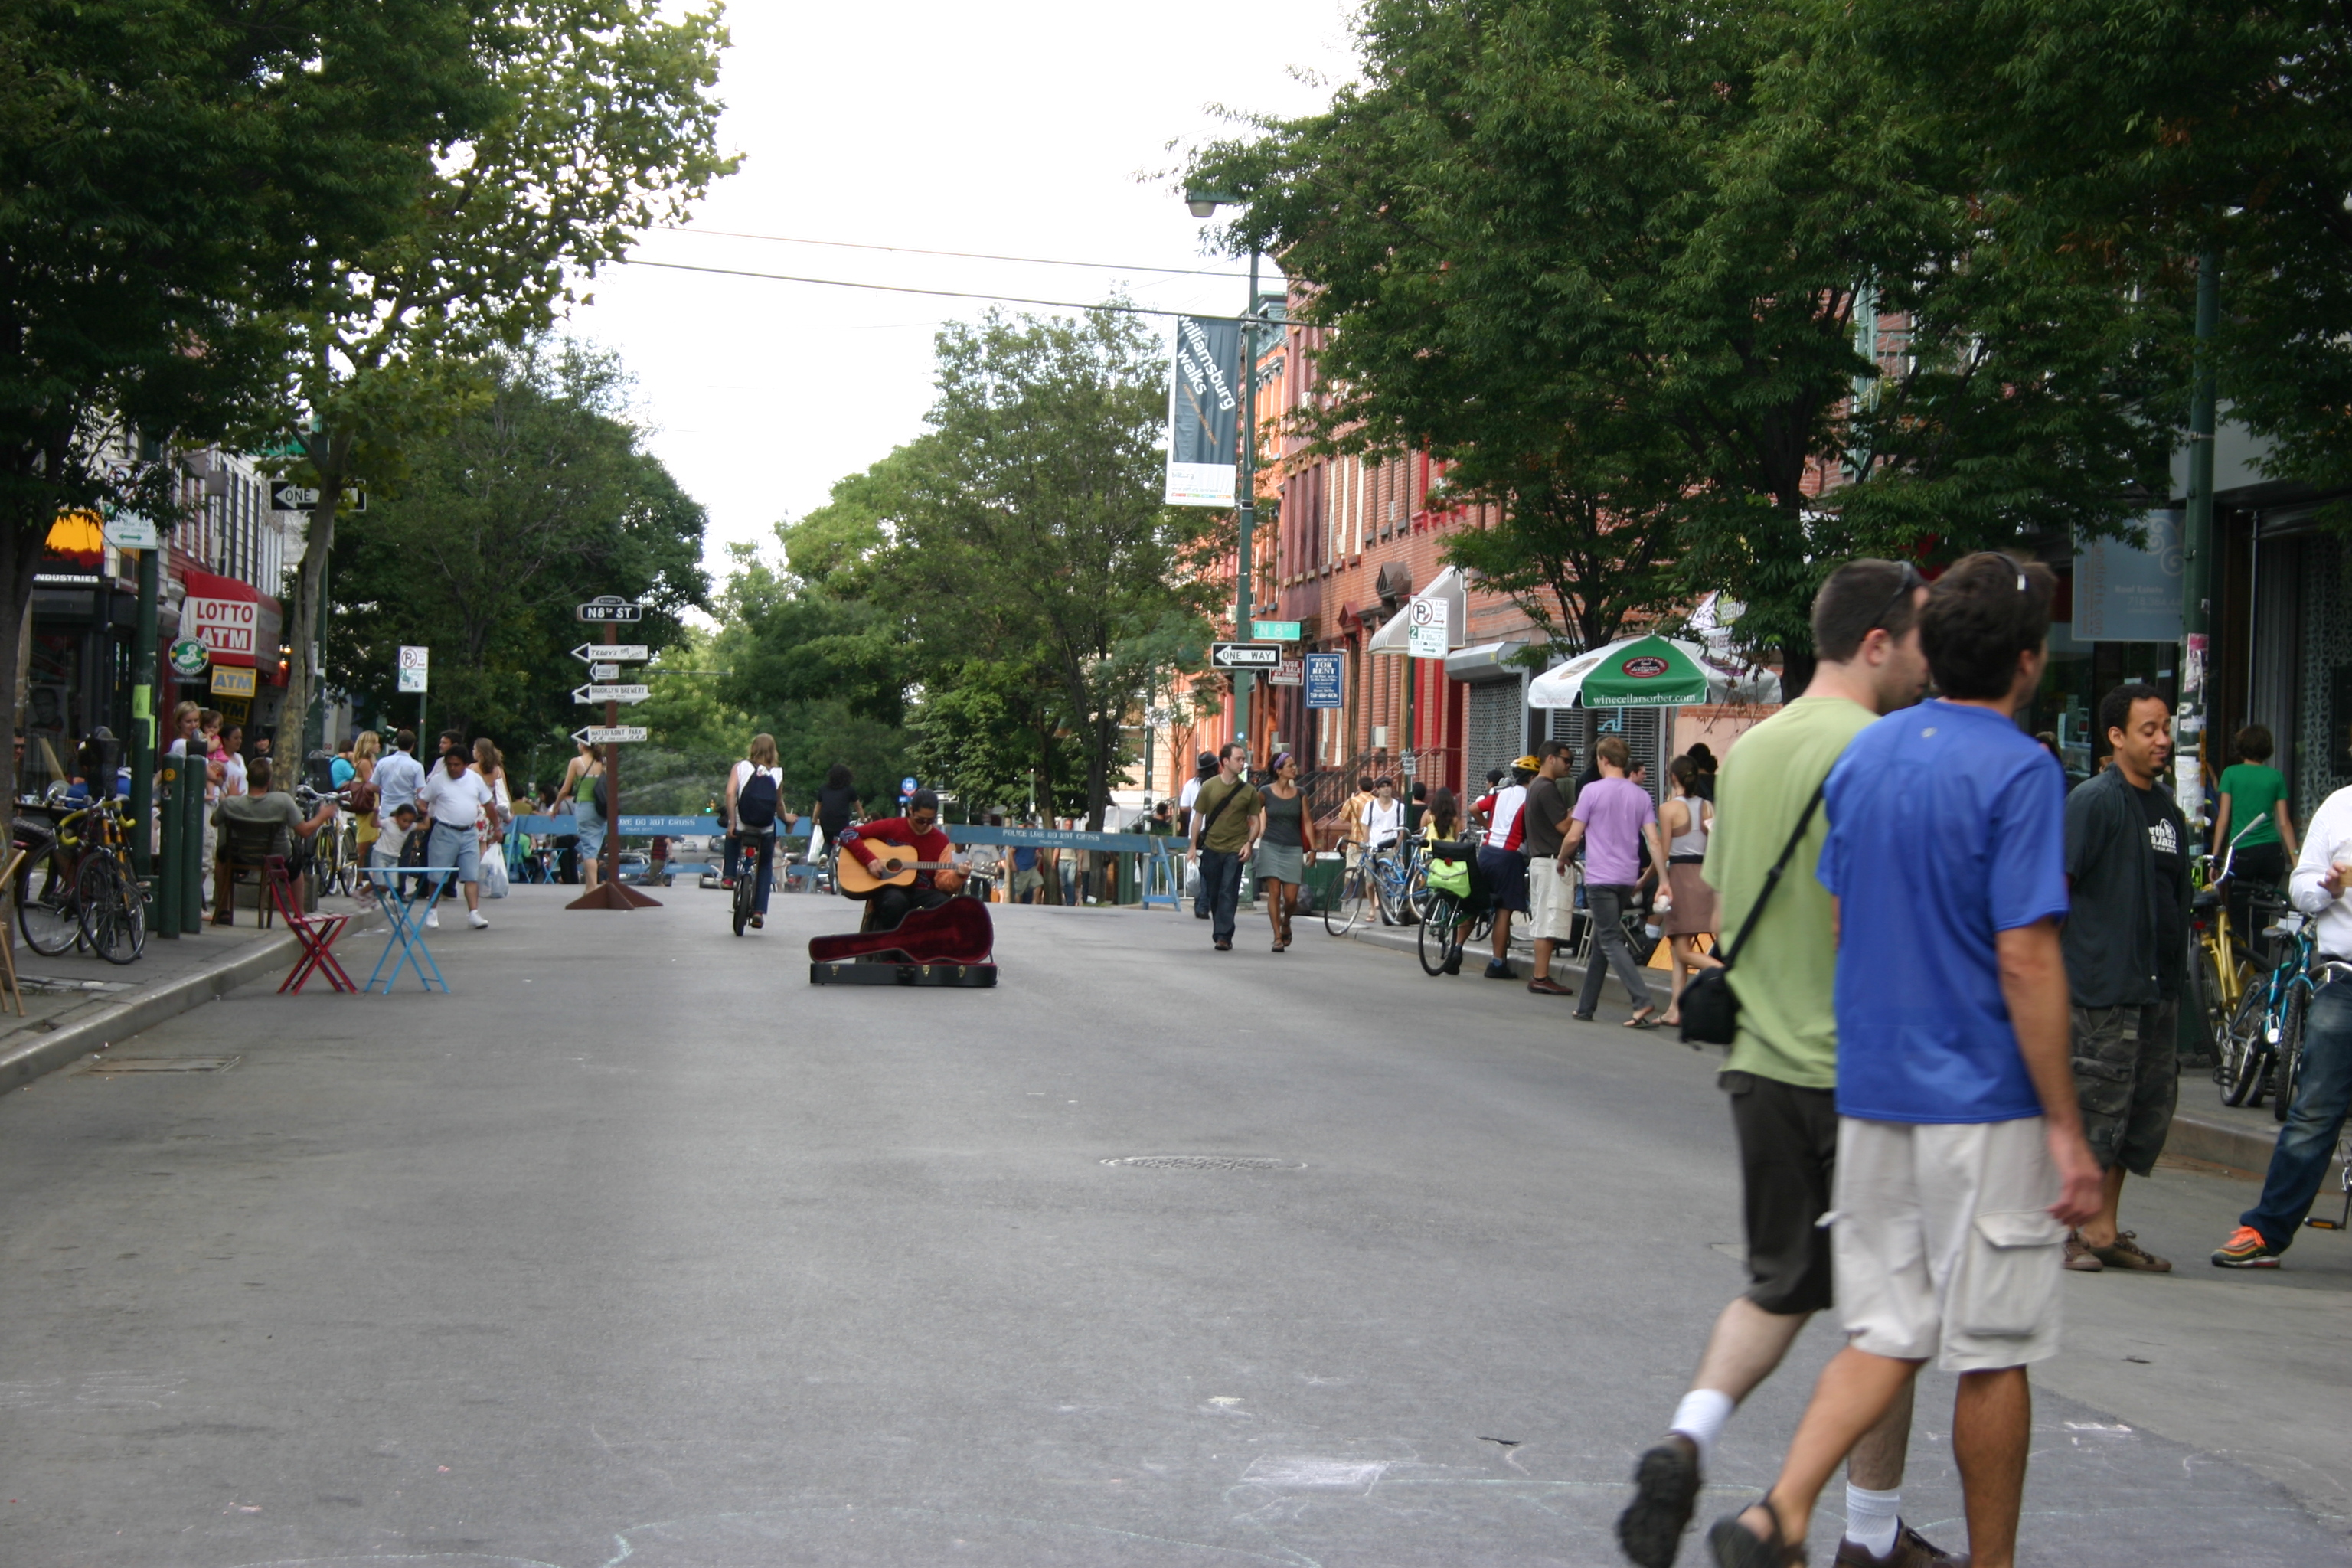 Bedford Ave & Elbow room? Fuhgedaboutit without Williamsburg Walks!